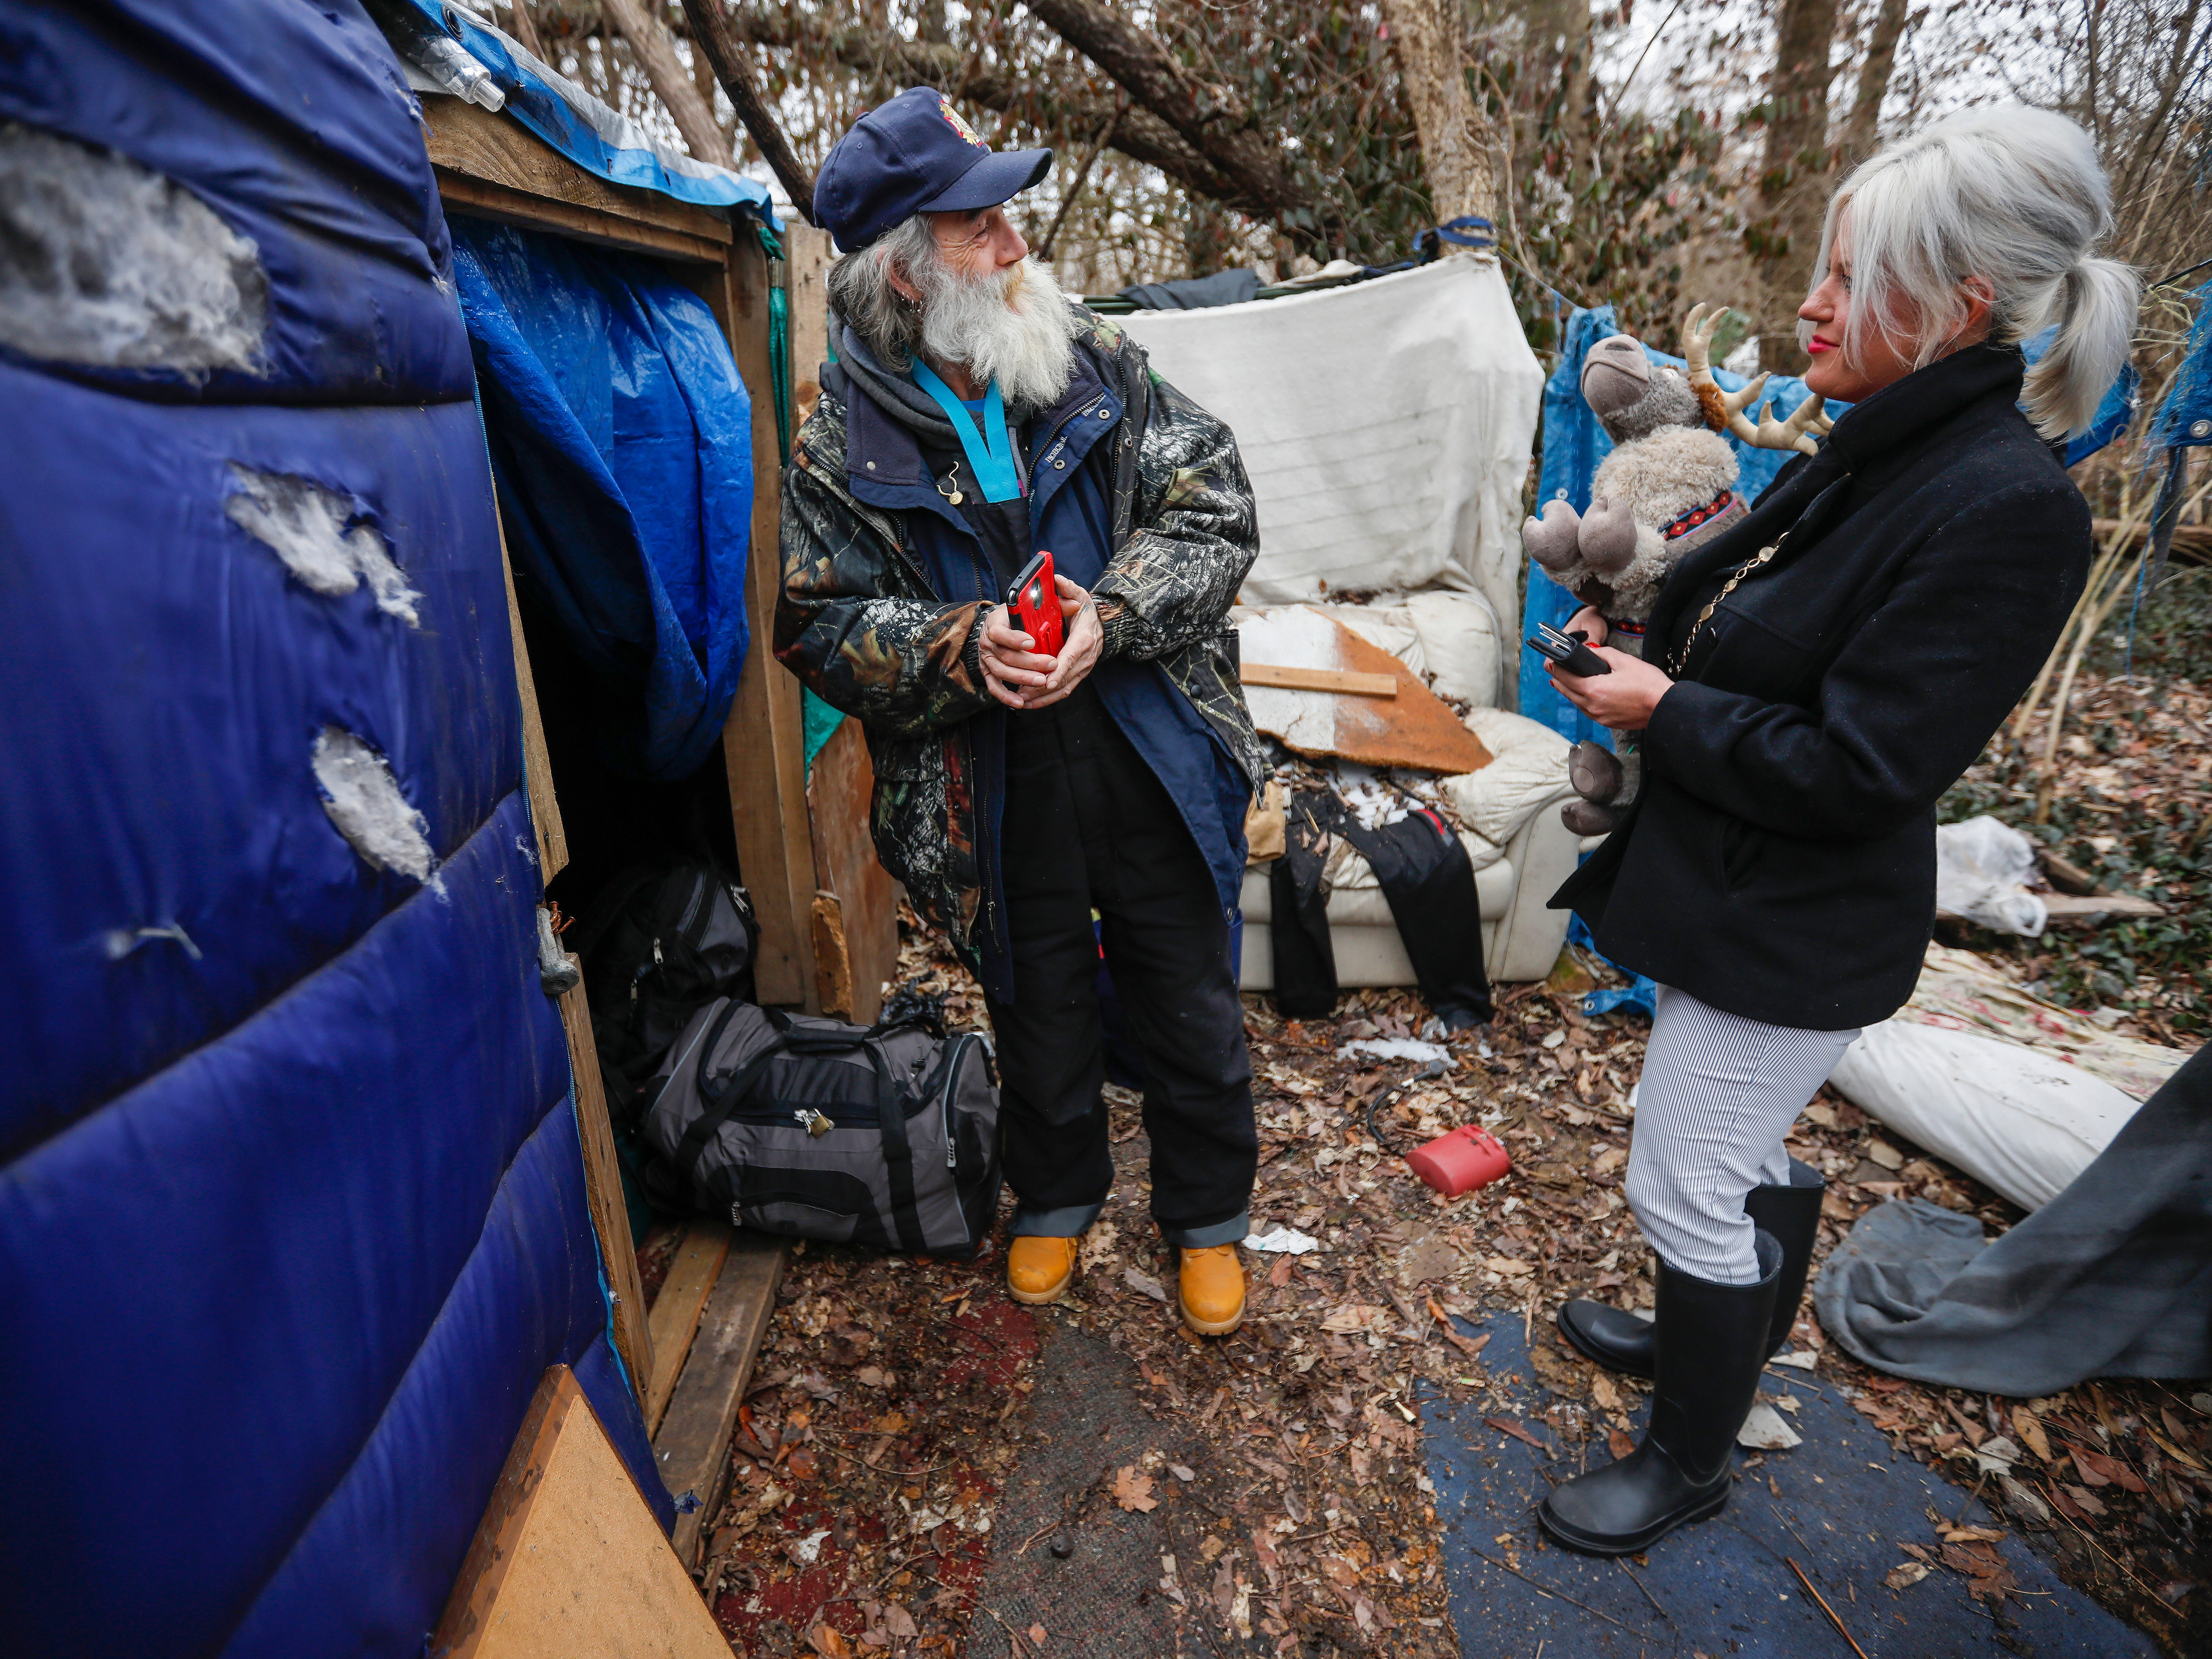 Gil Rife, left, who has been homeless for 3 years, talks with Stephanie Appleby, of NAMI, after giving her a stuffed reindeer outside the make-shift shelter he had been living in as he prepared to move into Eden Village on Thursday, Feb. 21, 2019.